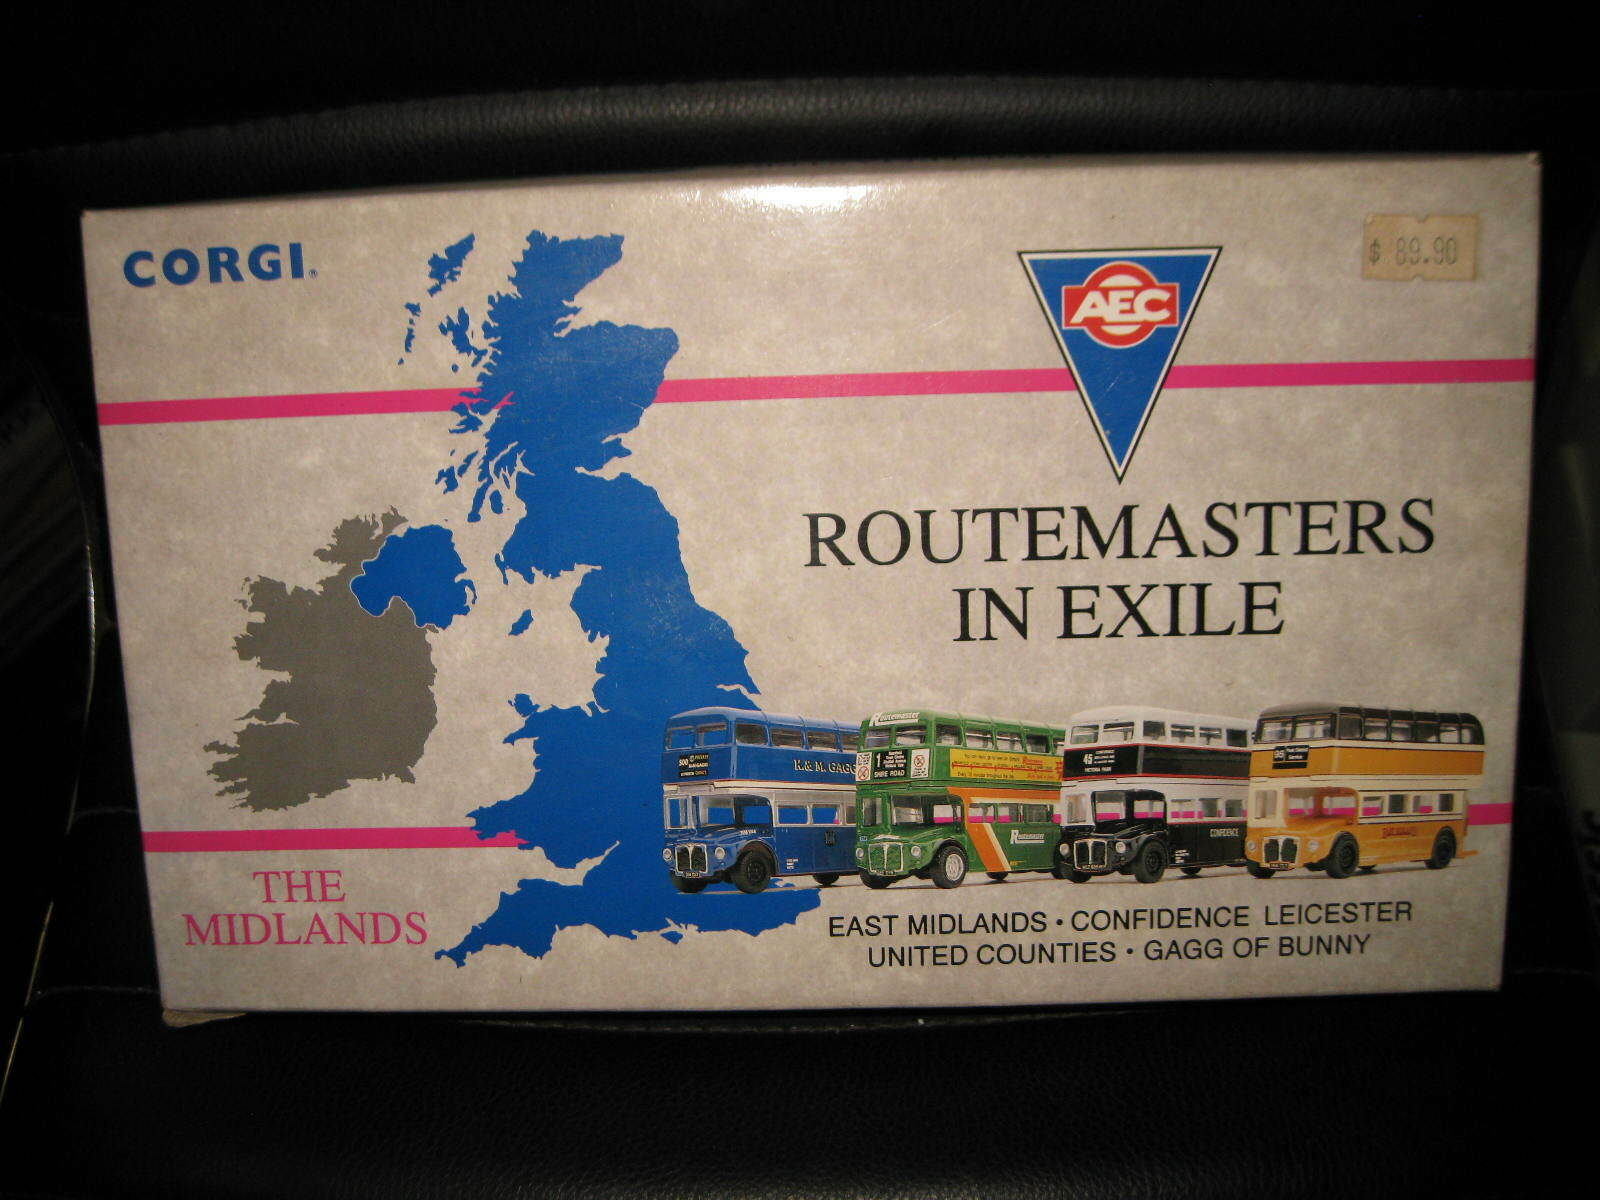 CORGI AEC ROUTEMASTER BUS SET OF 4 THE MIDLANDS ROUTEMASTERS IN EXILE